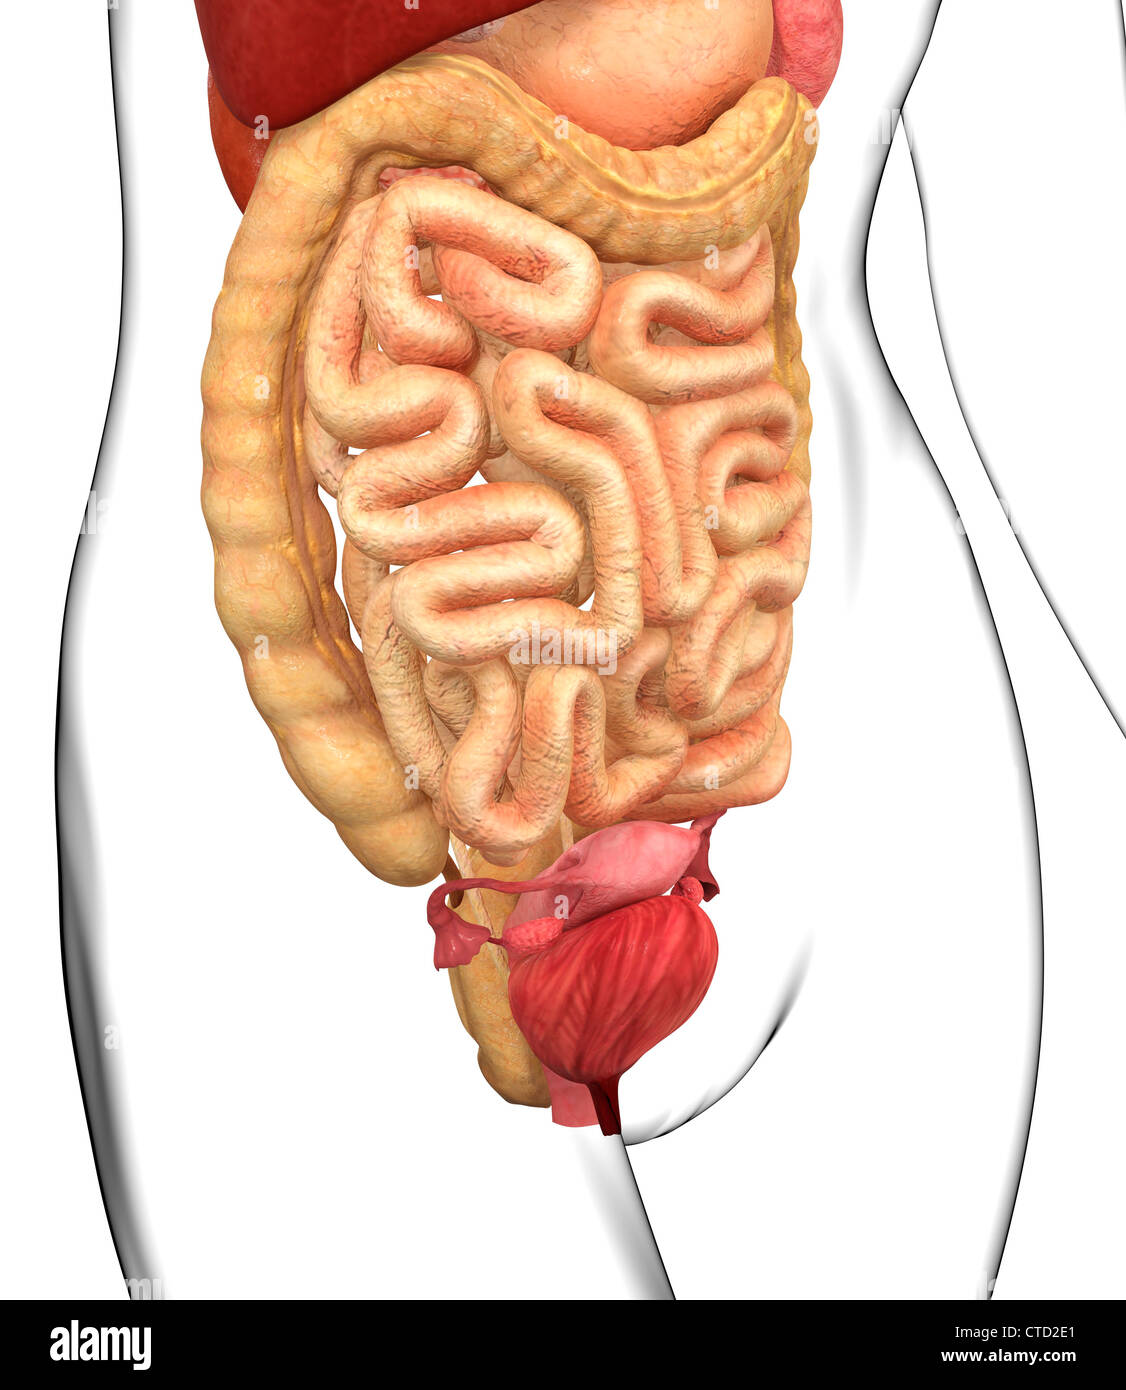 Female Abdominal Anatomy Stock Photos Female Abdominal Anatomy